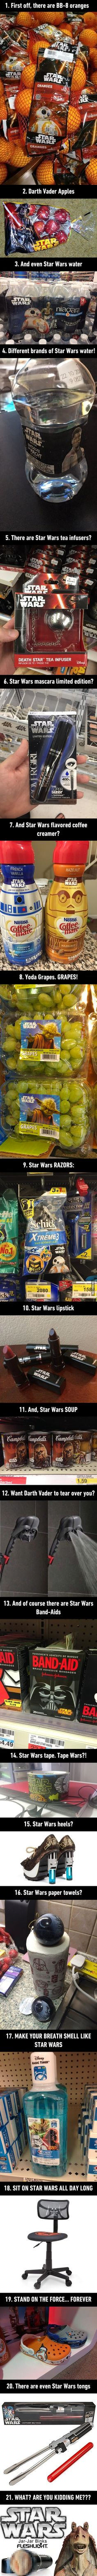 This is what happens when Disney gets the force... 21 Ridiculous Star Wars Products Prove That Star Wars Stuff Has Gone Too Far